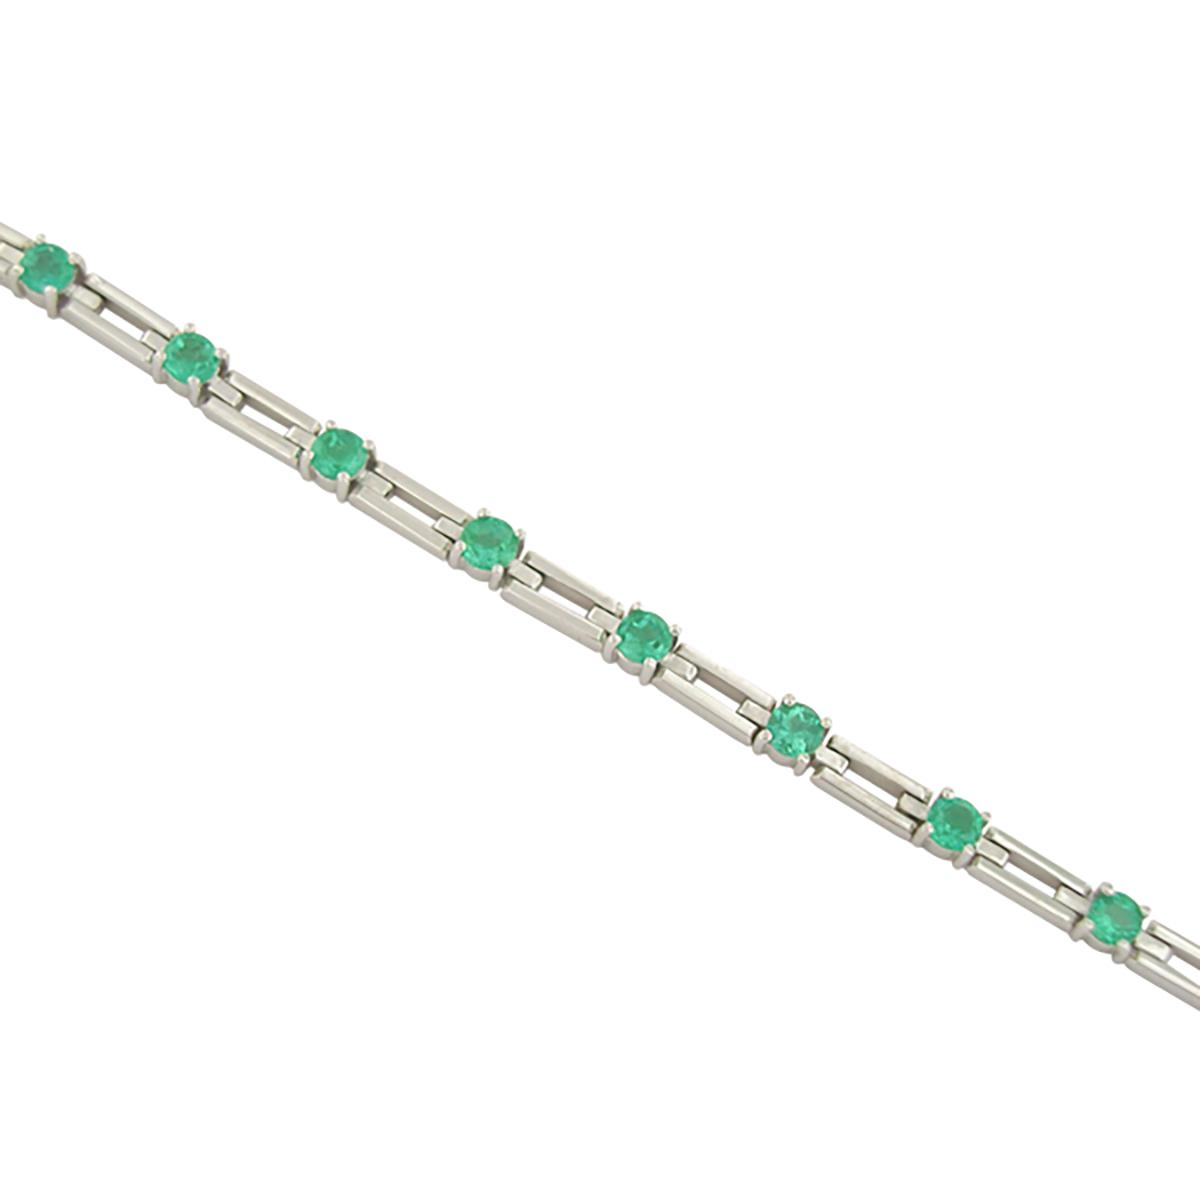 18k-white-gold-emerald-bracelet-with-13-round-cut-natural-colombian-emeralds